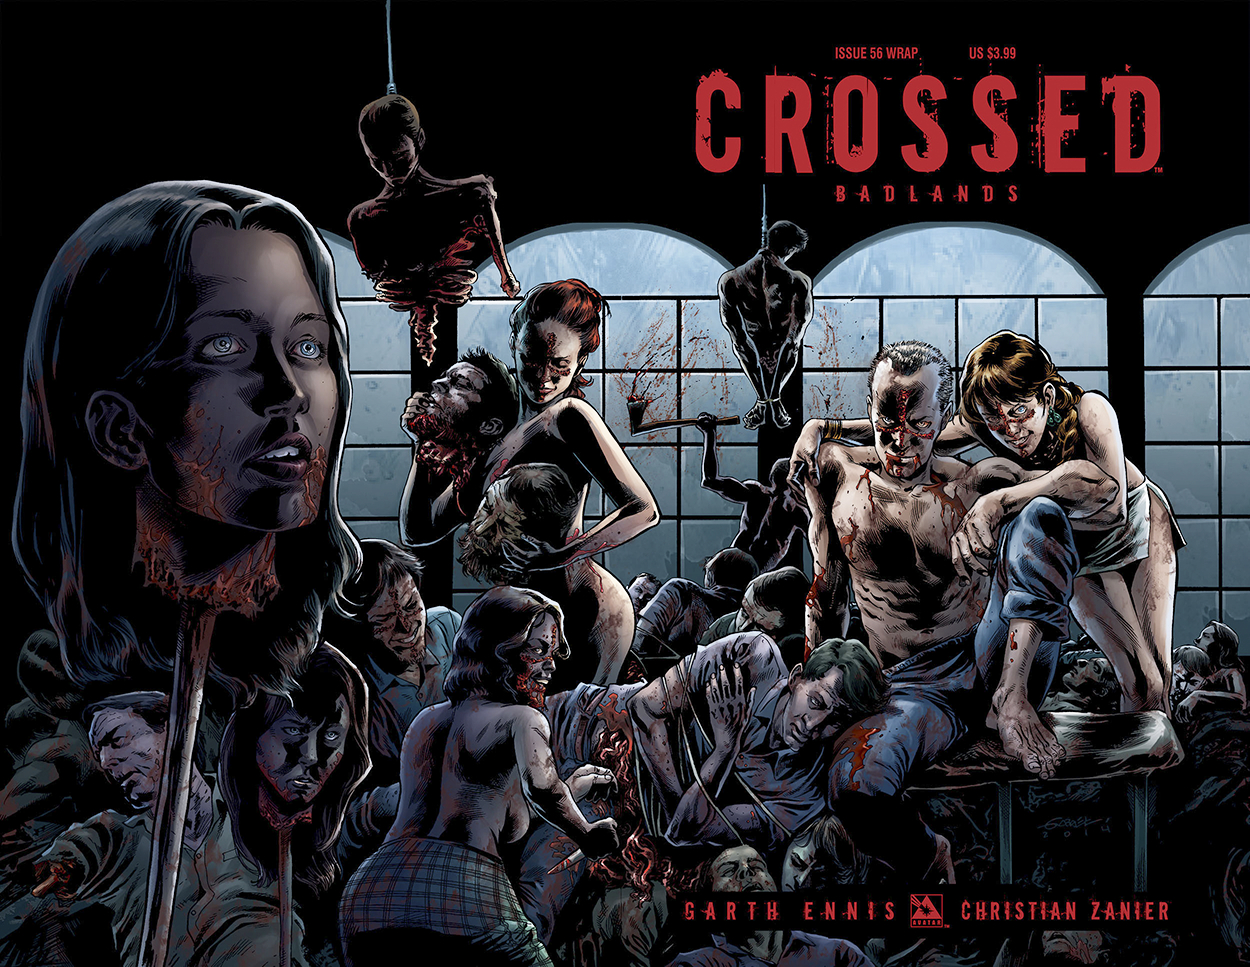 CROSSED BADLANDS #56 WRAP CVR